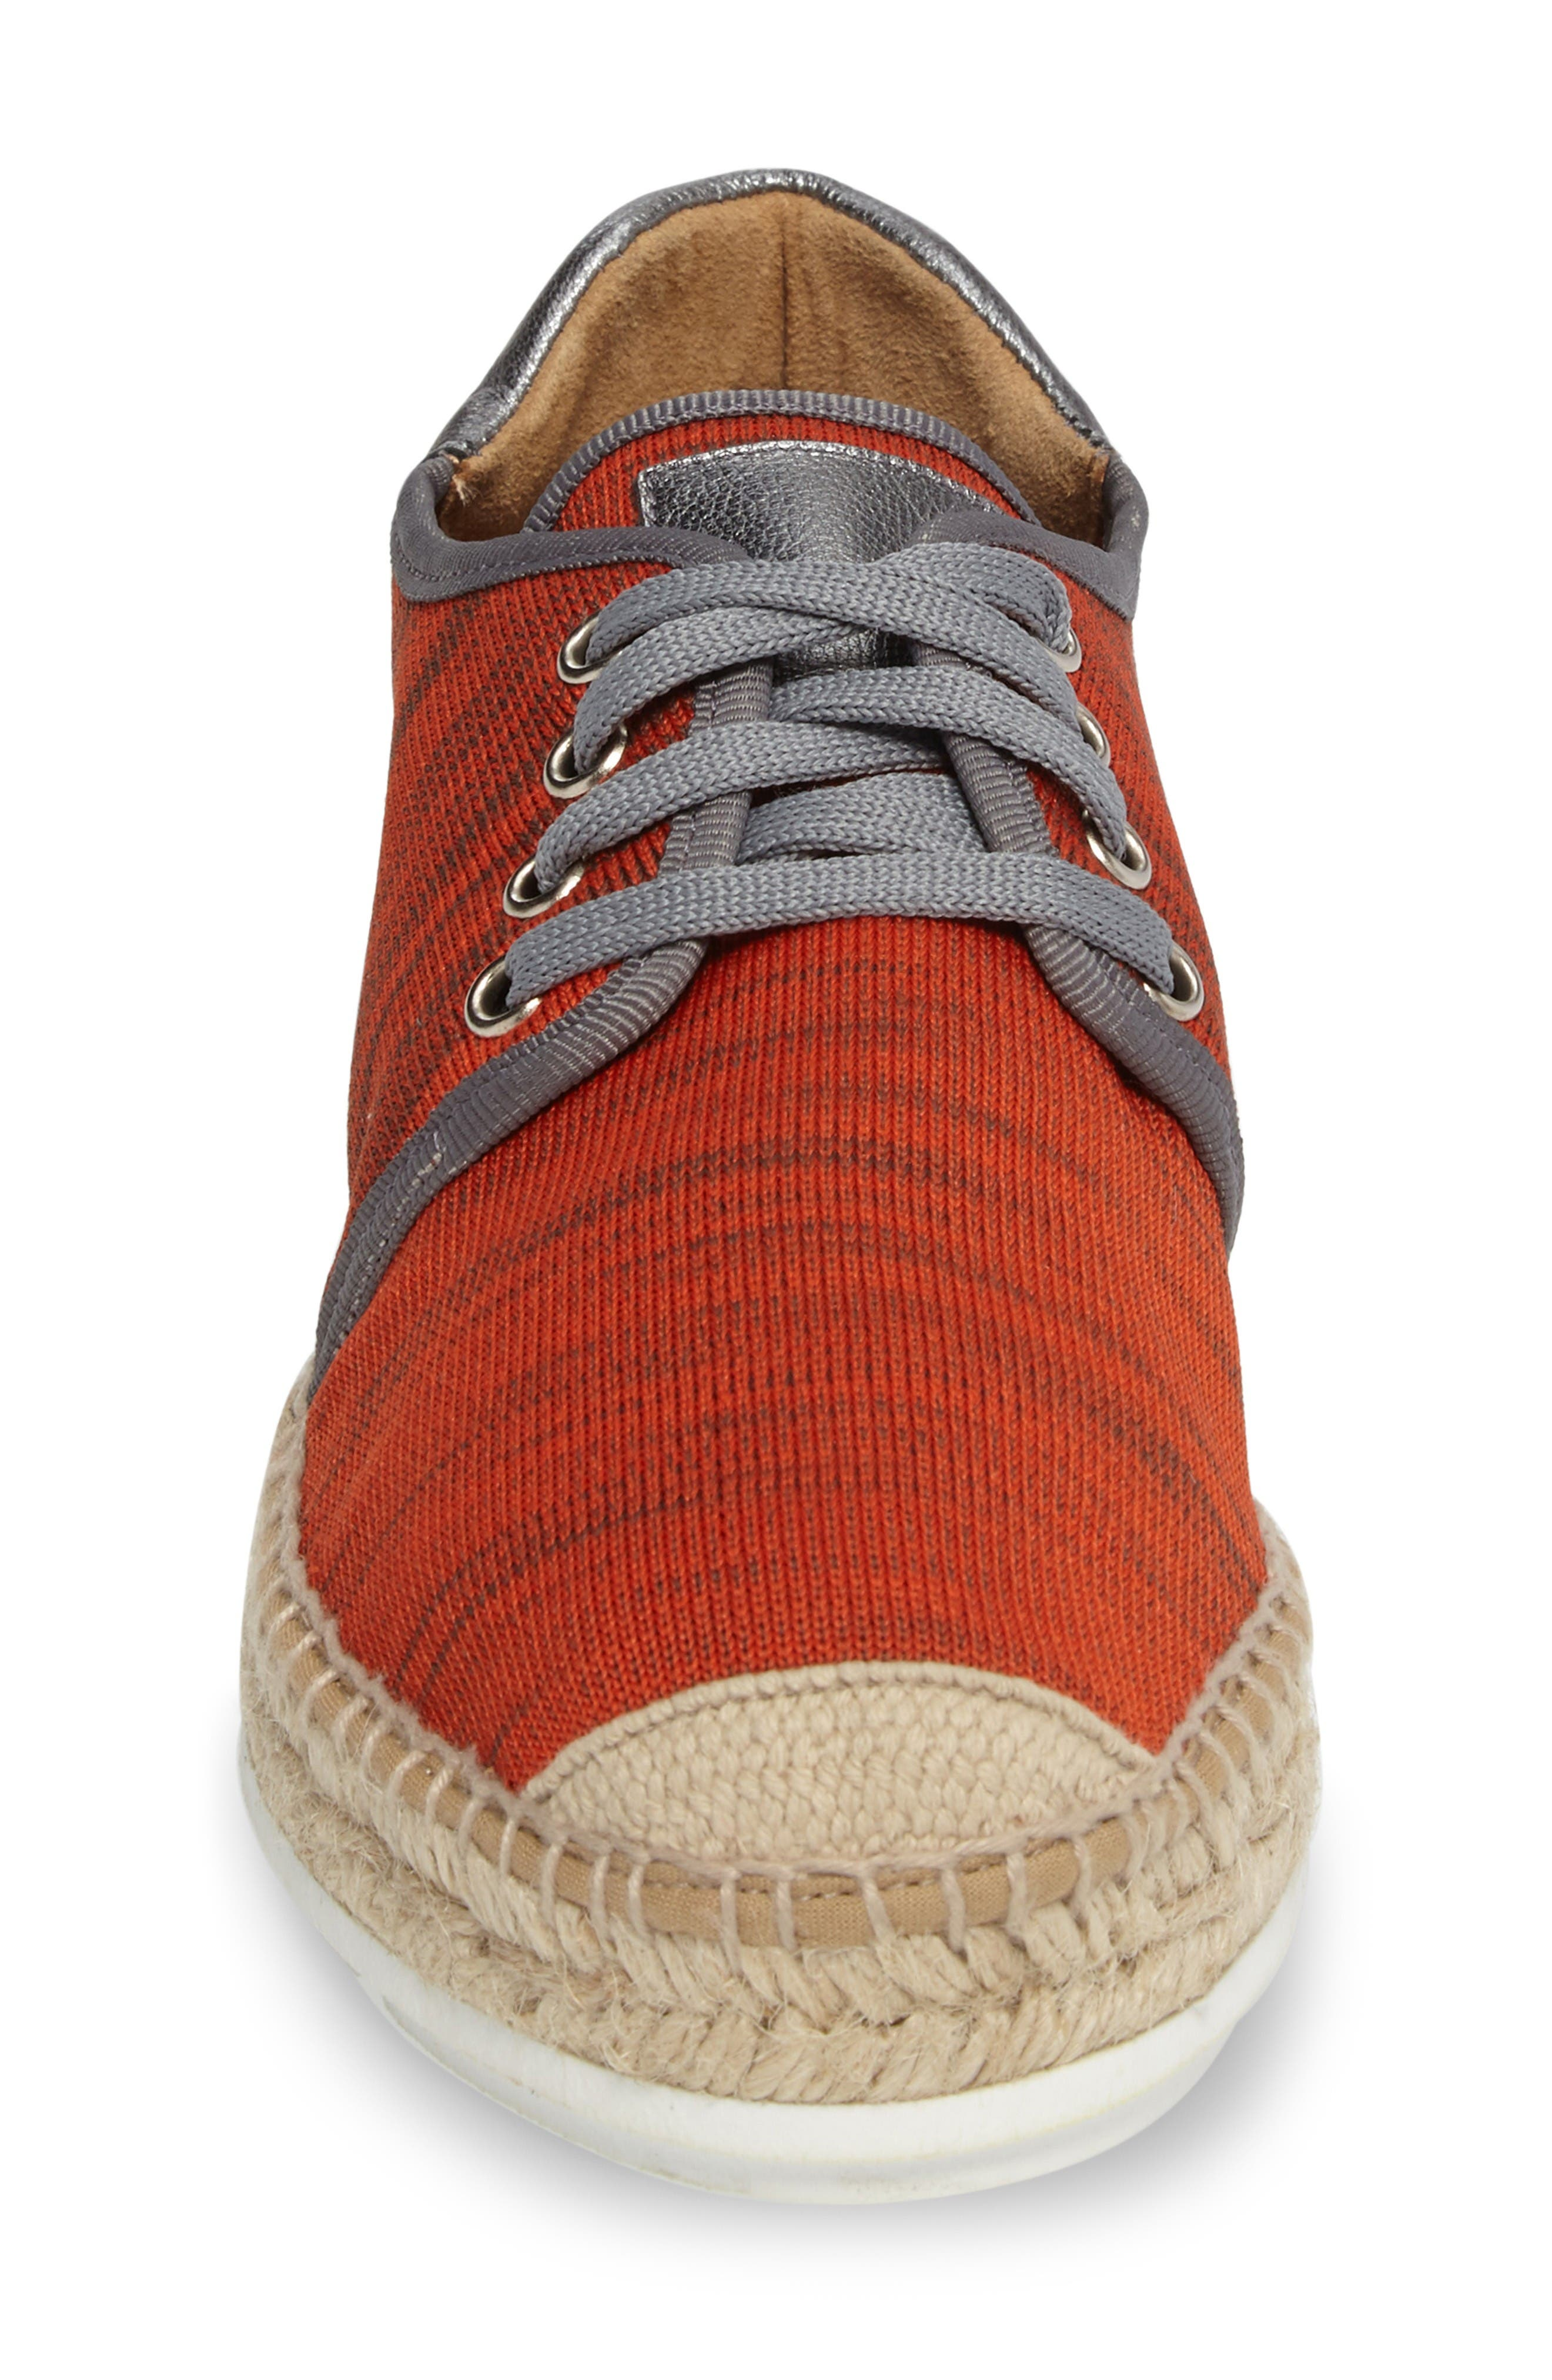 Alternate Image 4  - Bettye Muller Newport Mesh Espadrille Sneaker (Women)